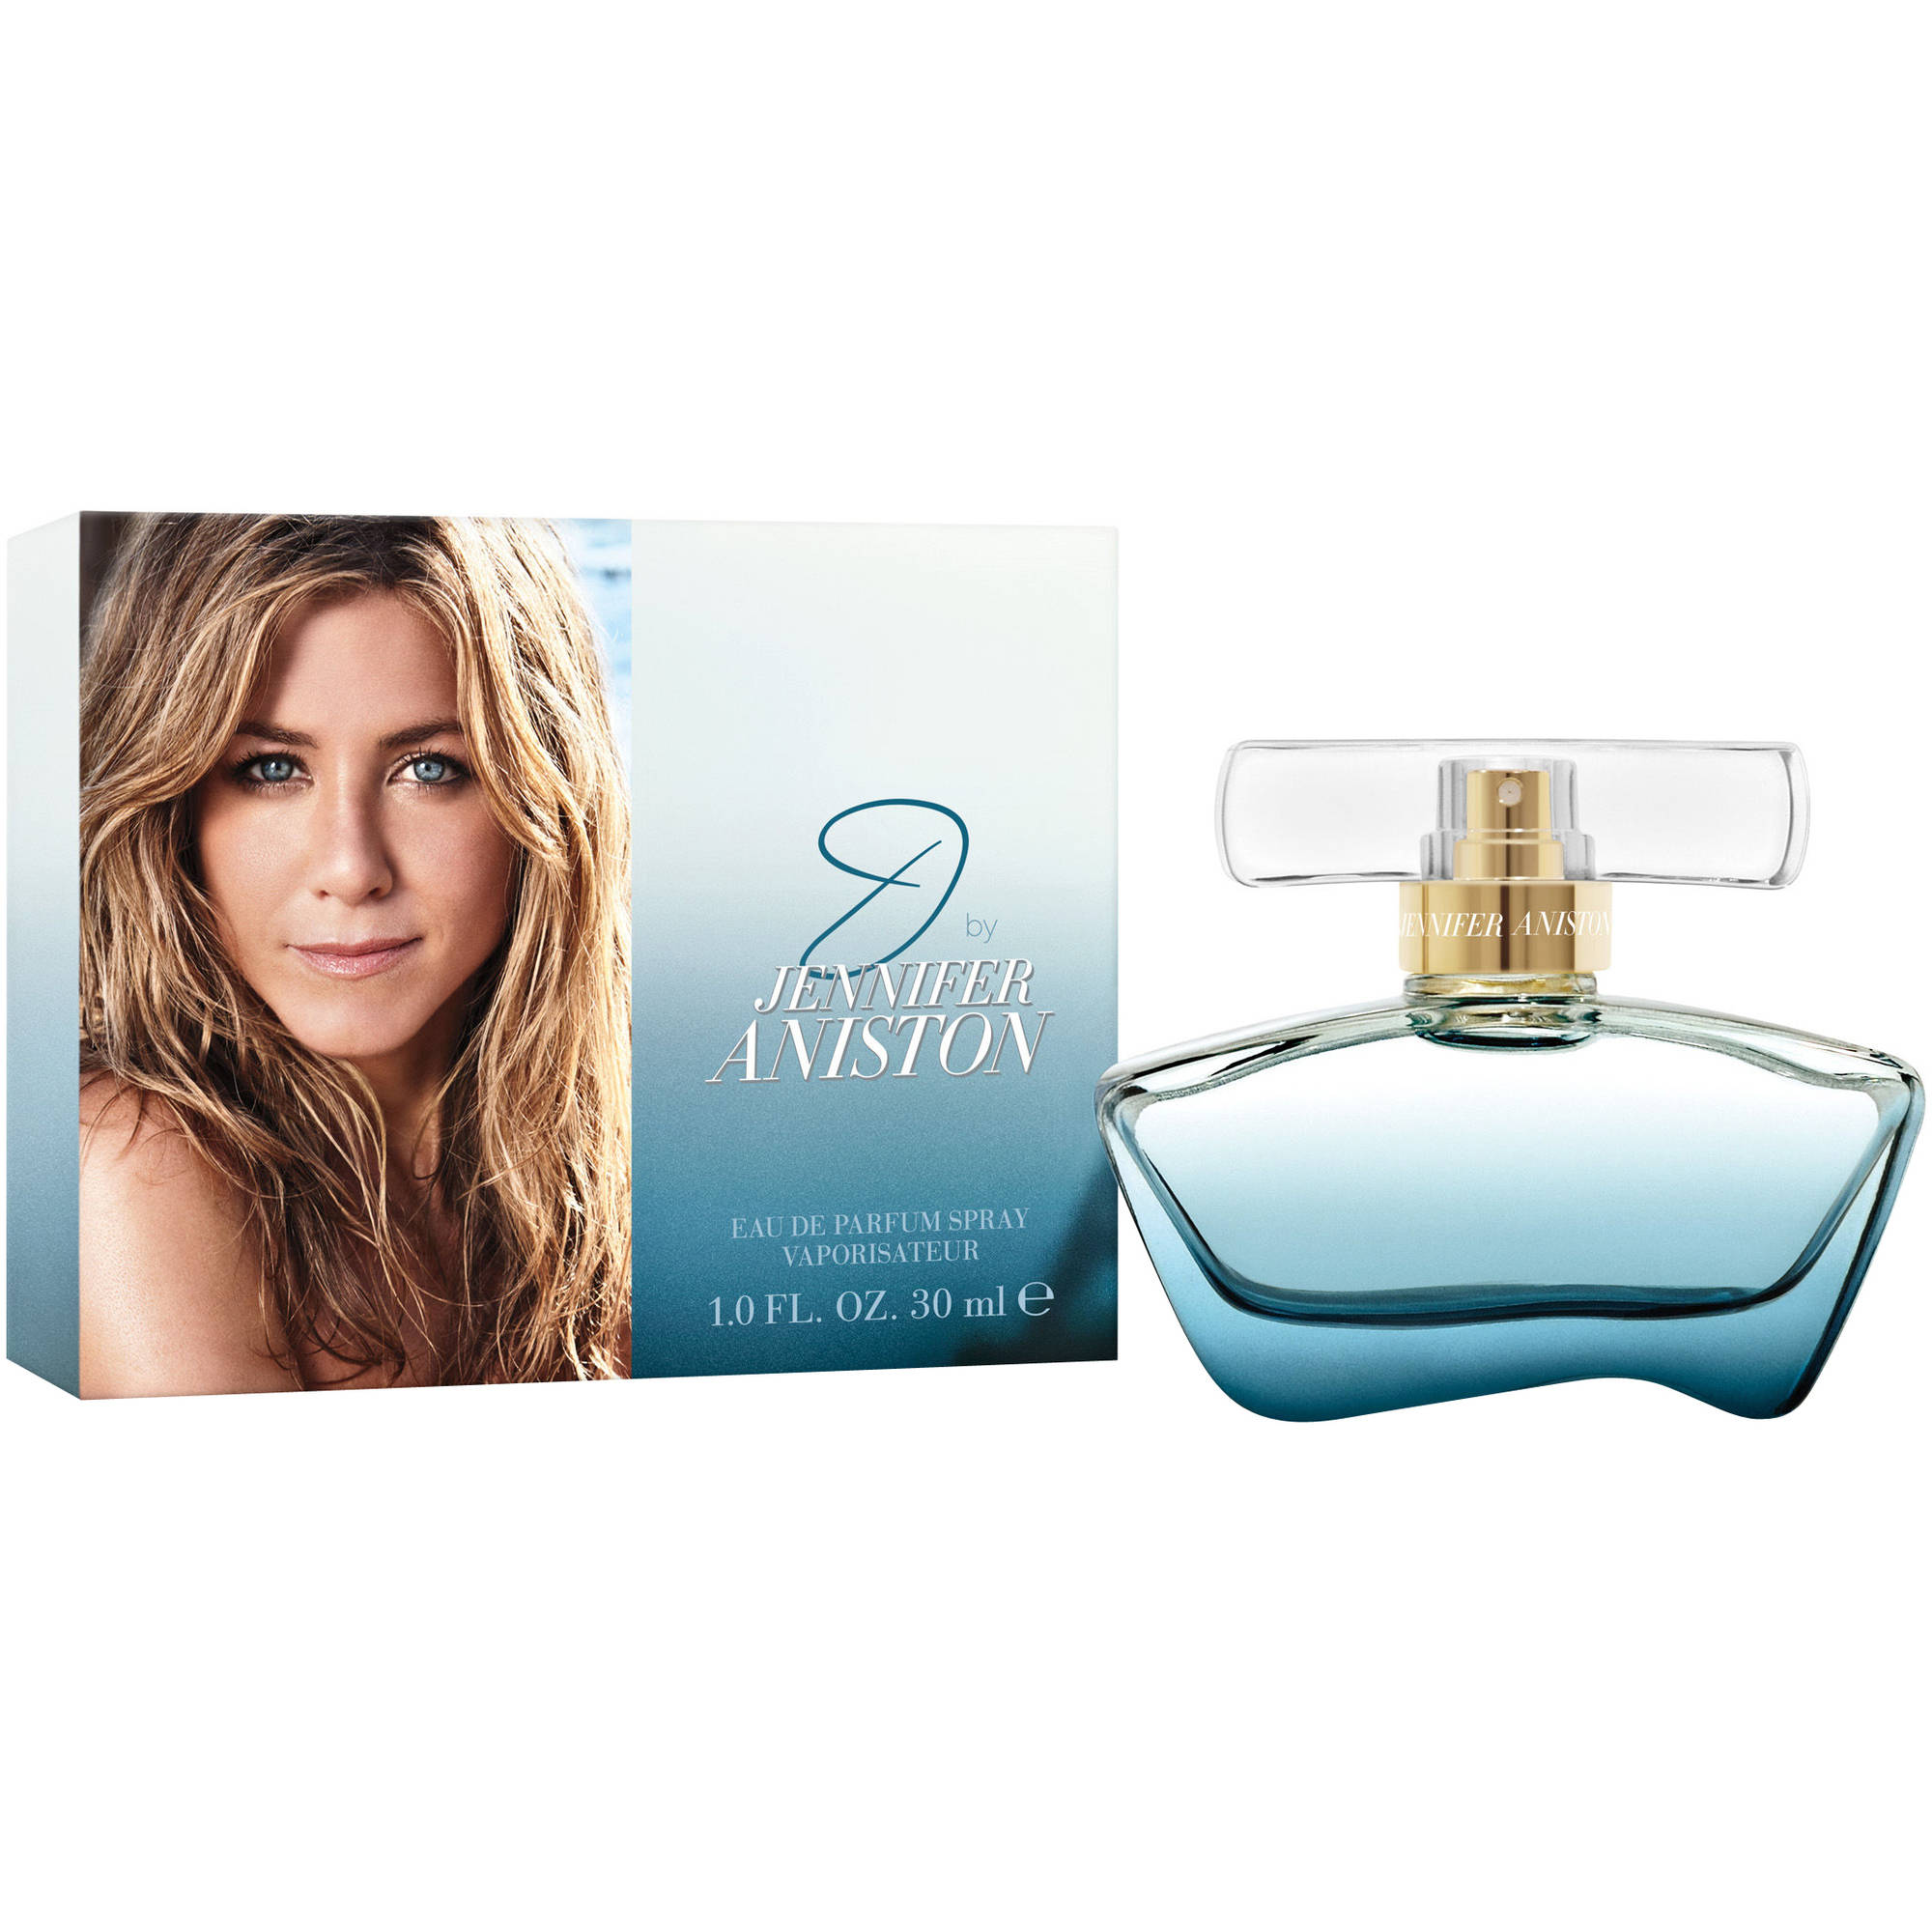 J by Jennifer Aniston Eau de Parfum, 1 fl oz